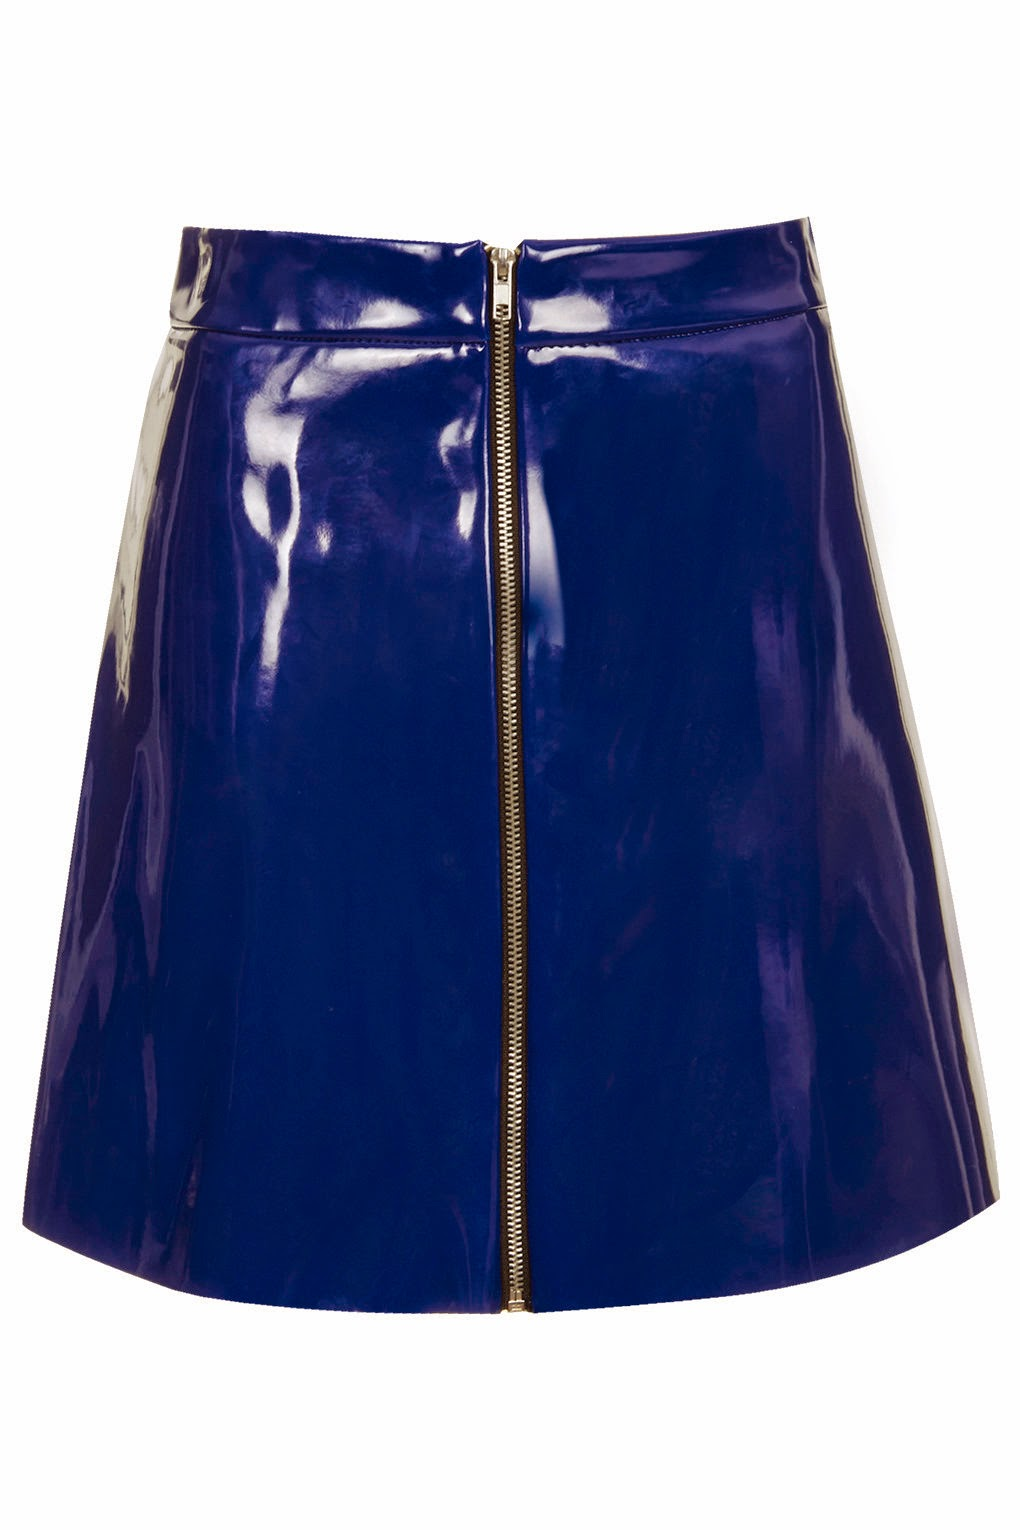 http://www.topshop.com/en/tsuk/product/new-in-this-week-2169932/vinyl-a-line-skirt-4008444?bi=1&ps=200